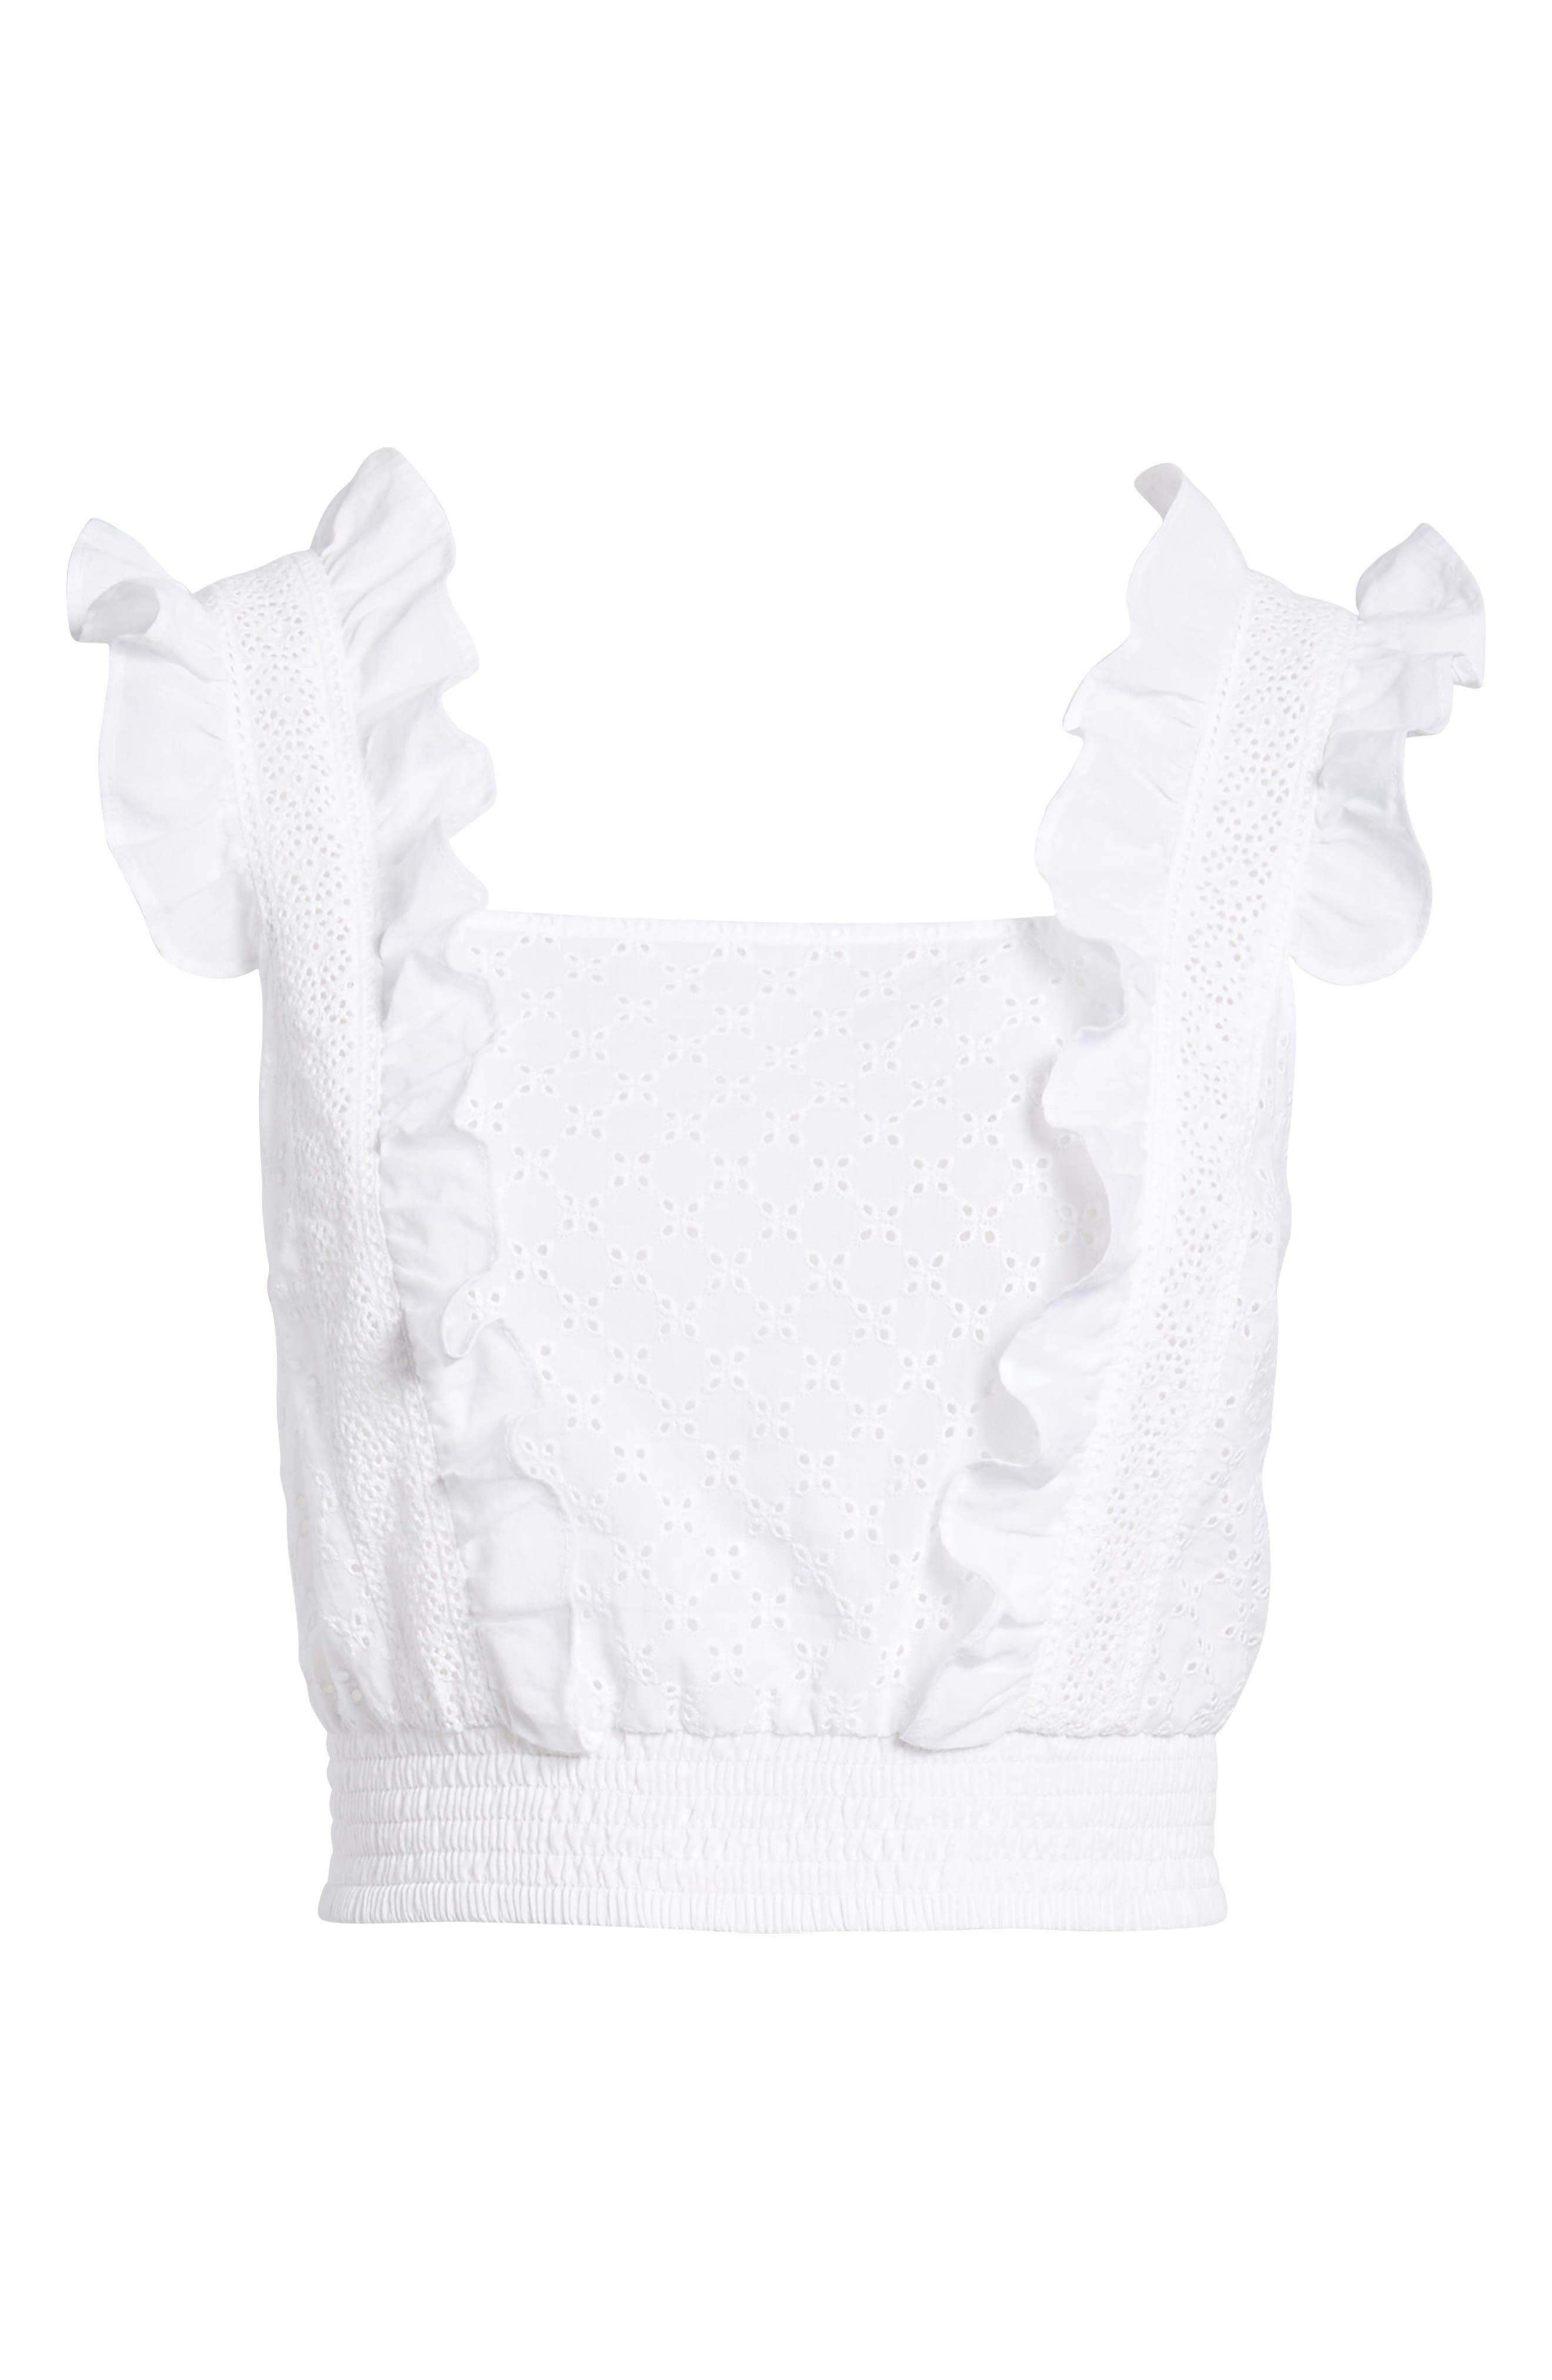 Ruffle Eyelet Crop Top,                             Alternate thumbnail 7, color,                             100